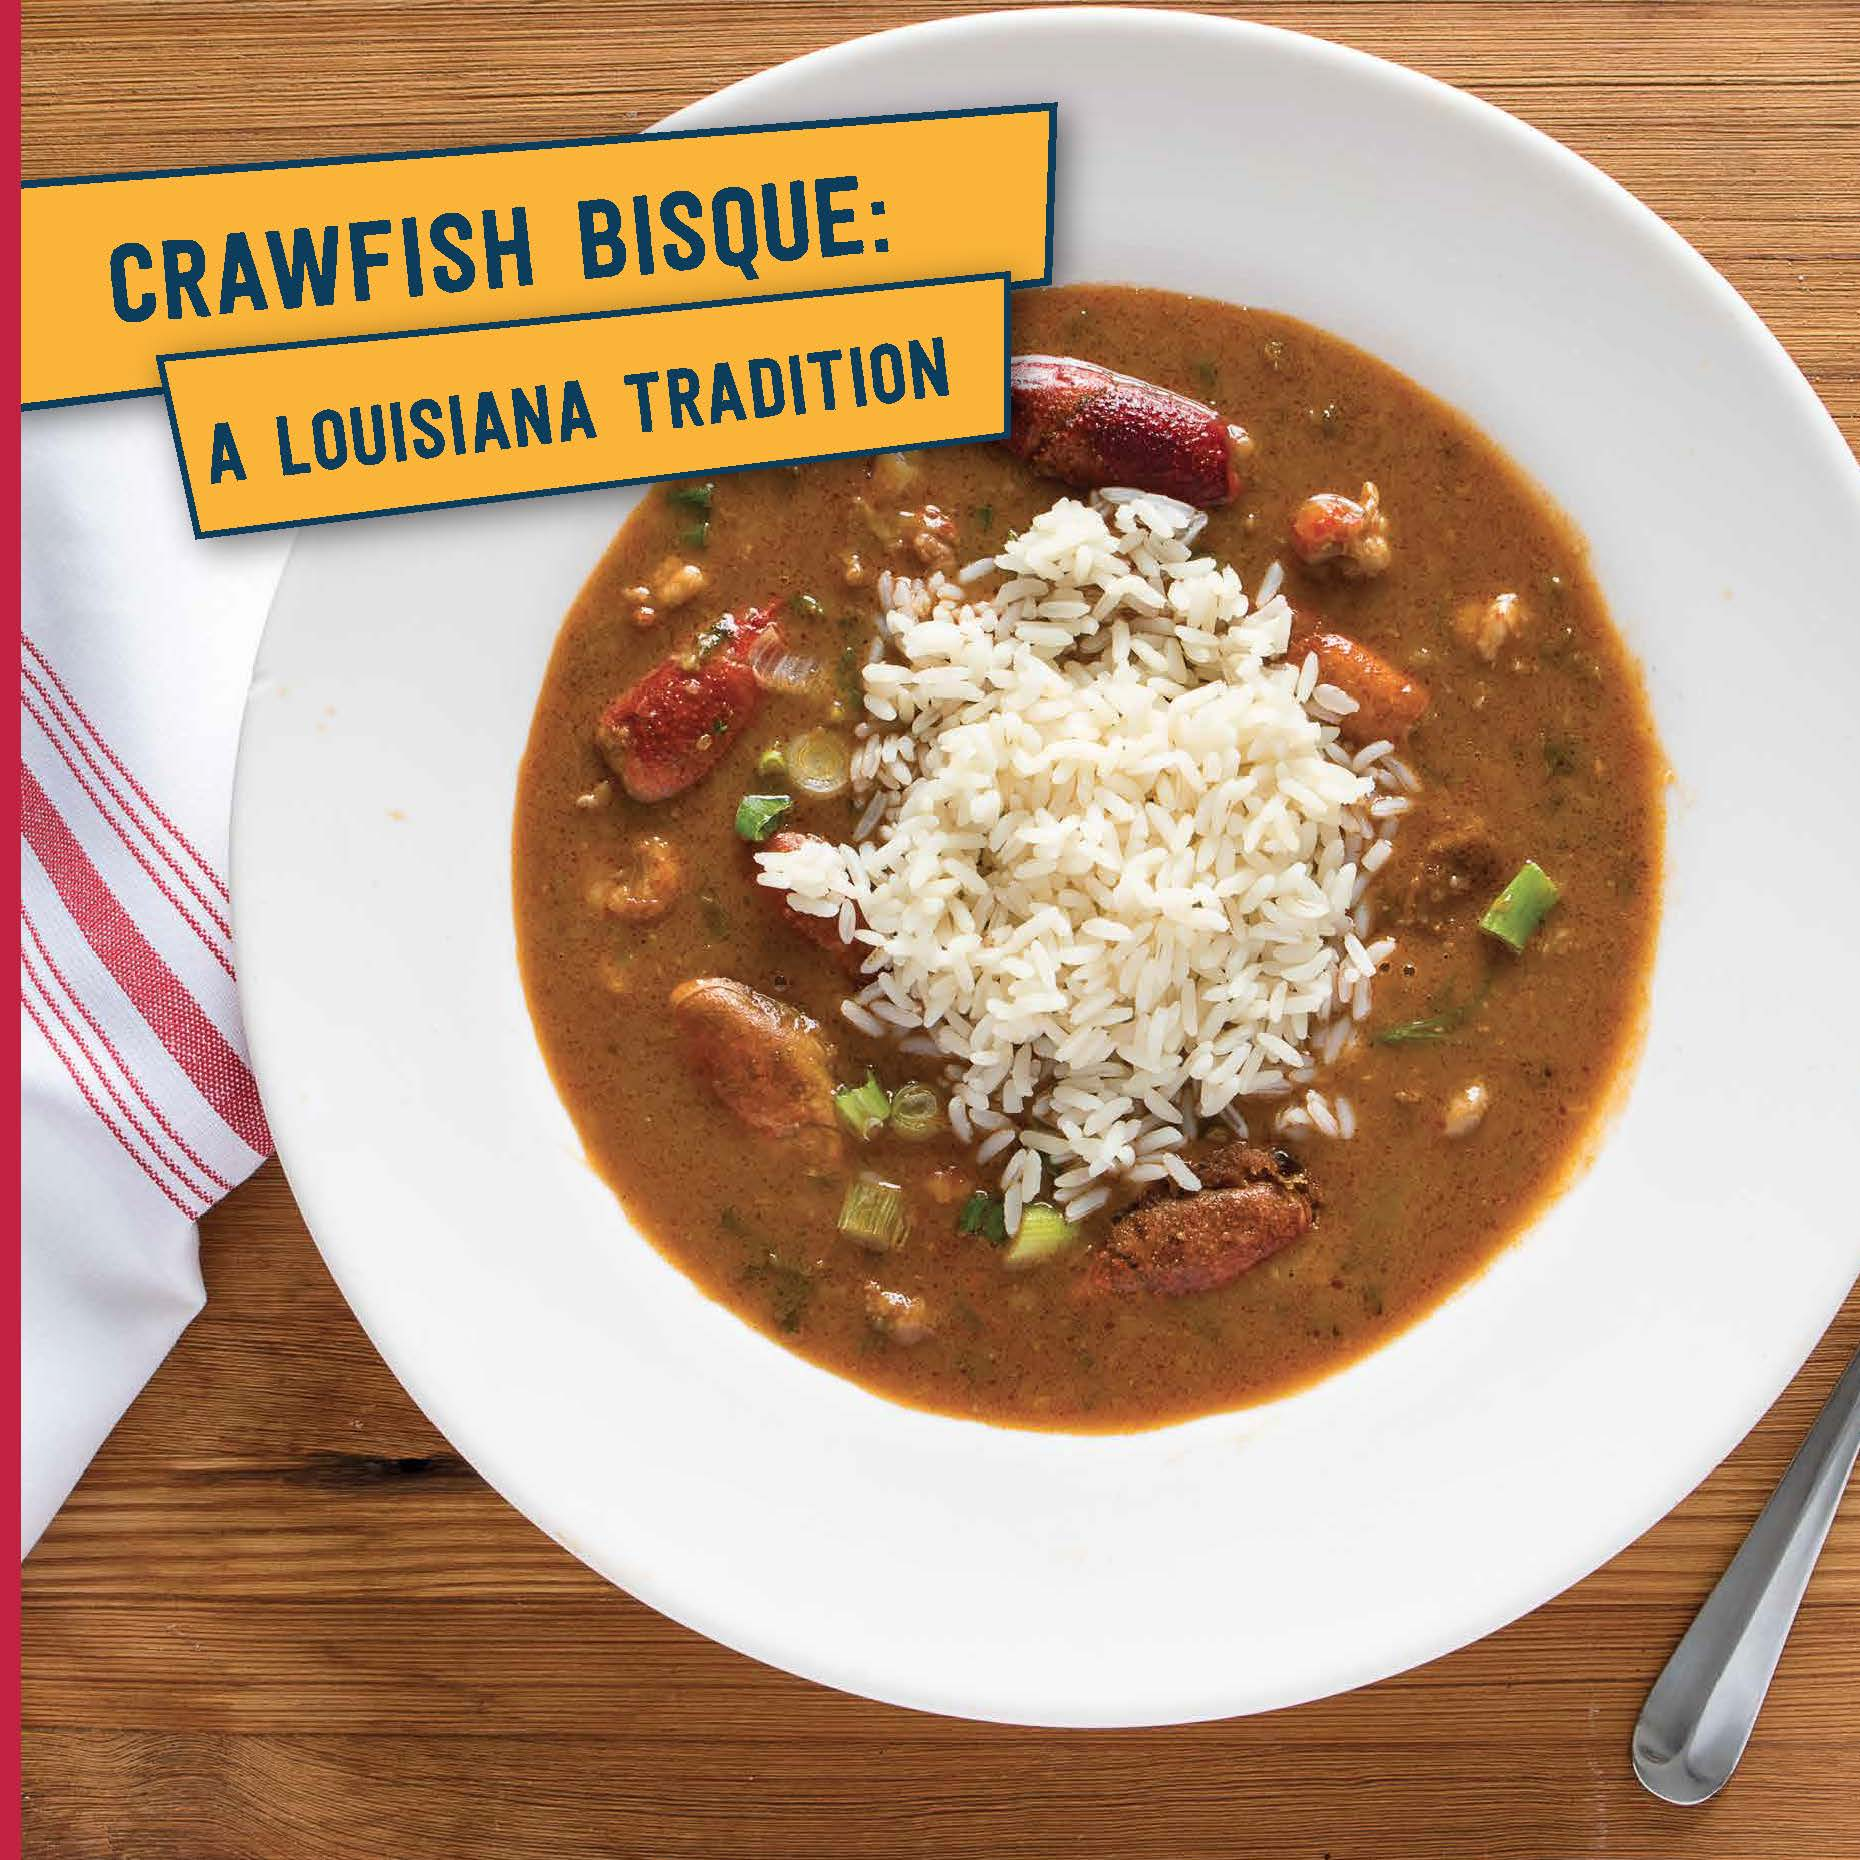 deanies-seafood-louisiana-crawfish-bisque